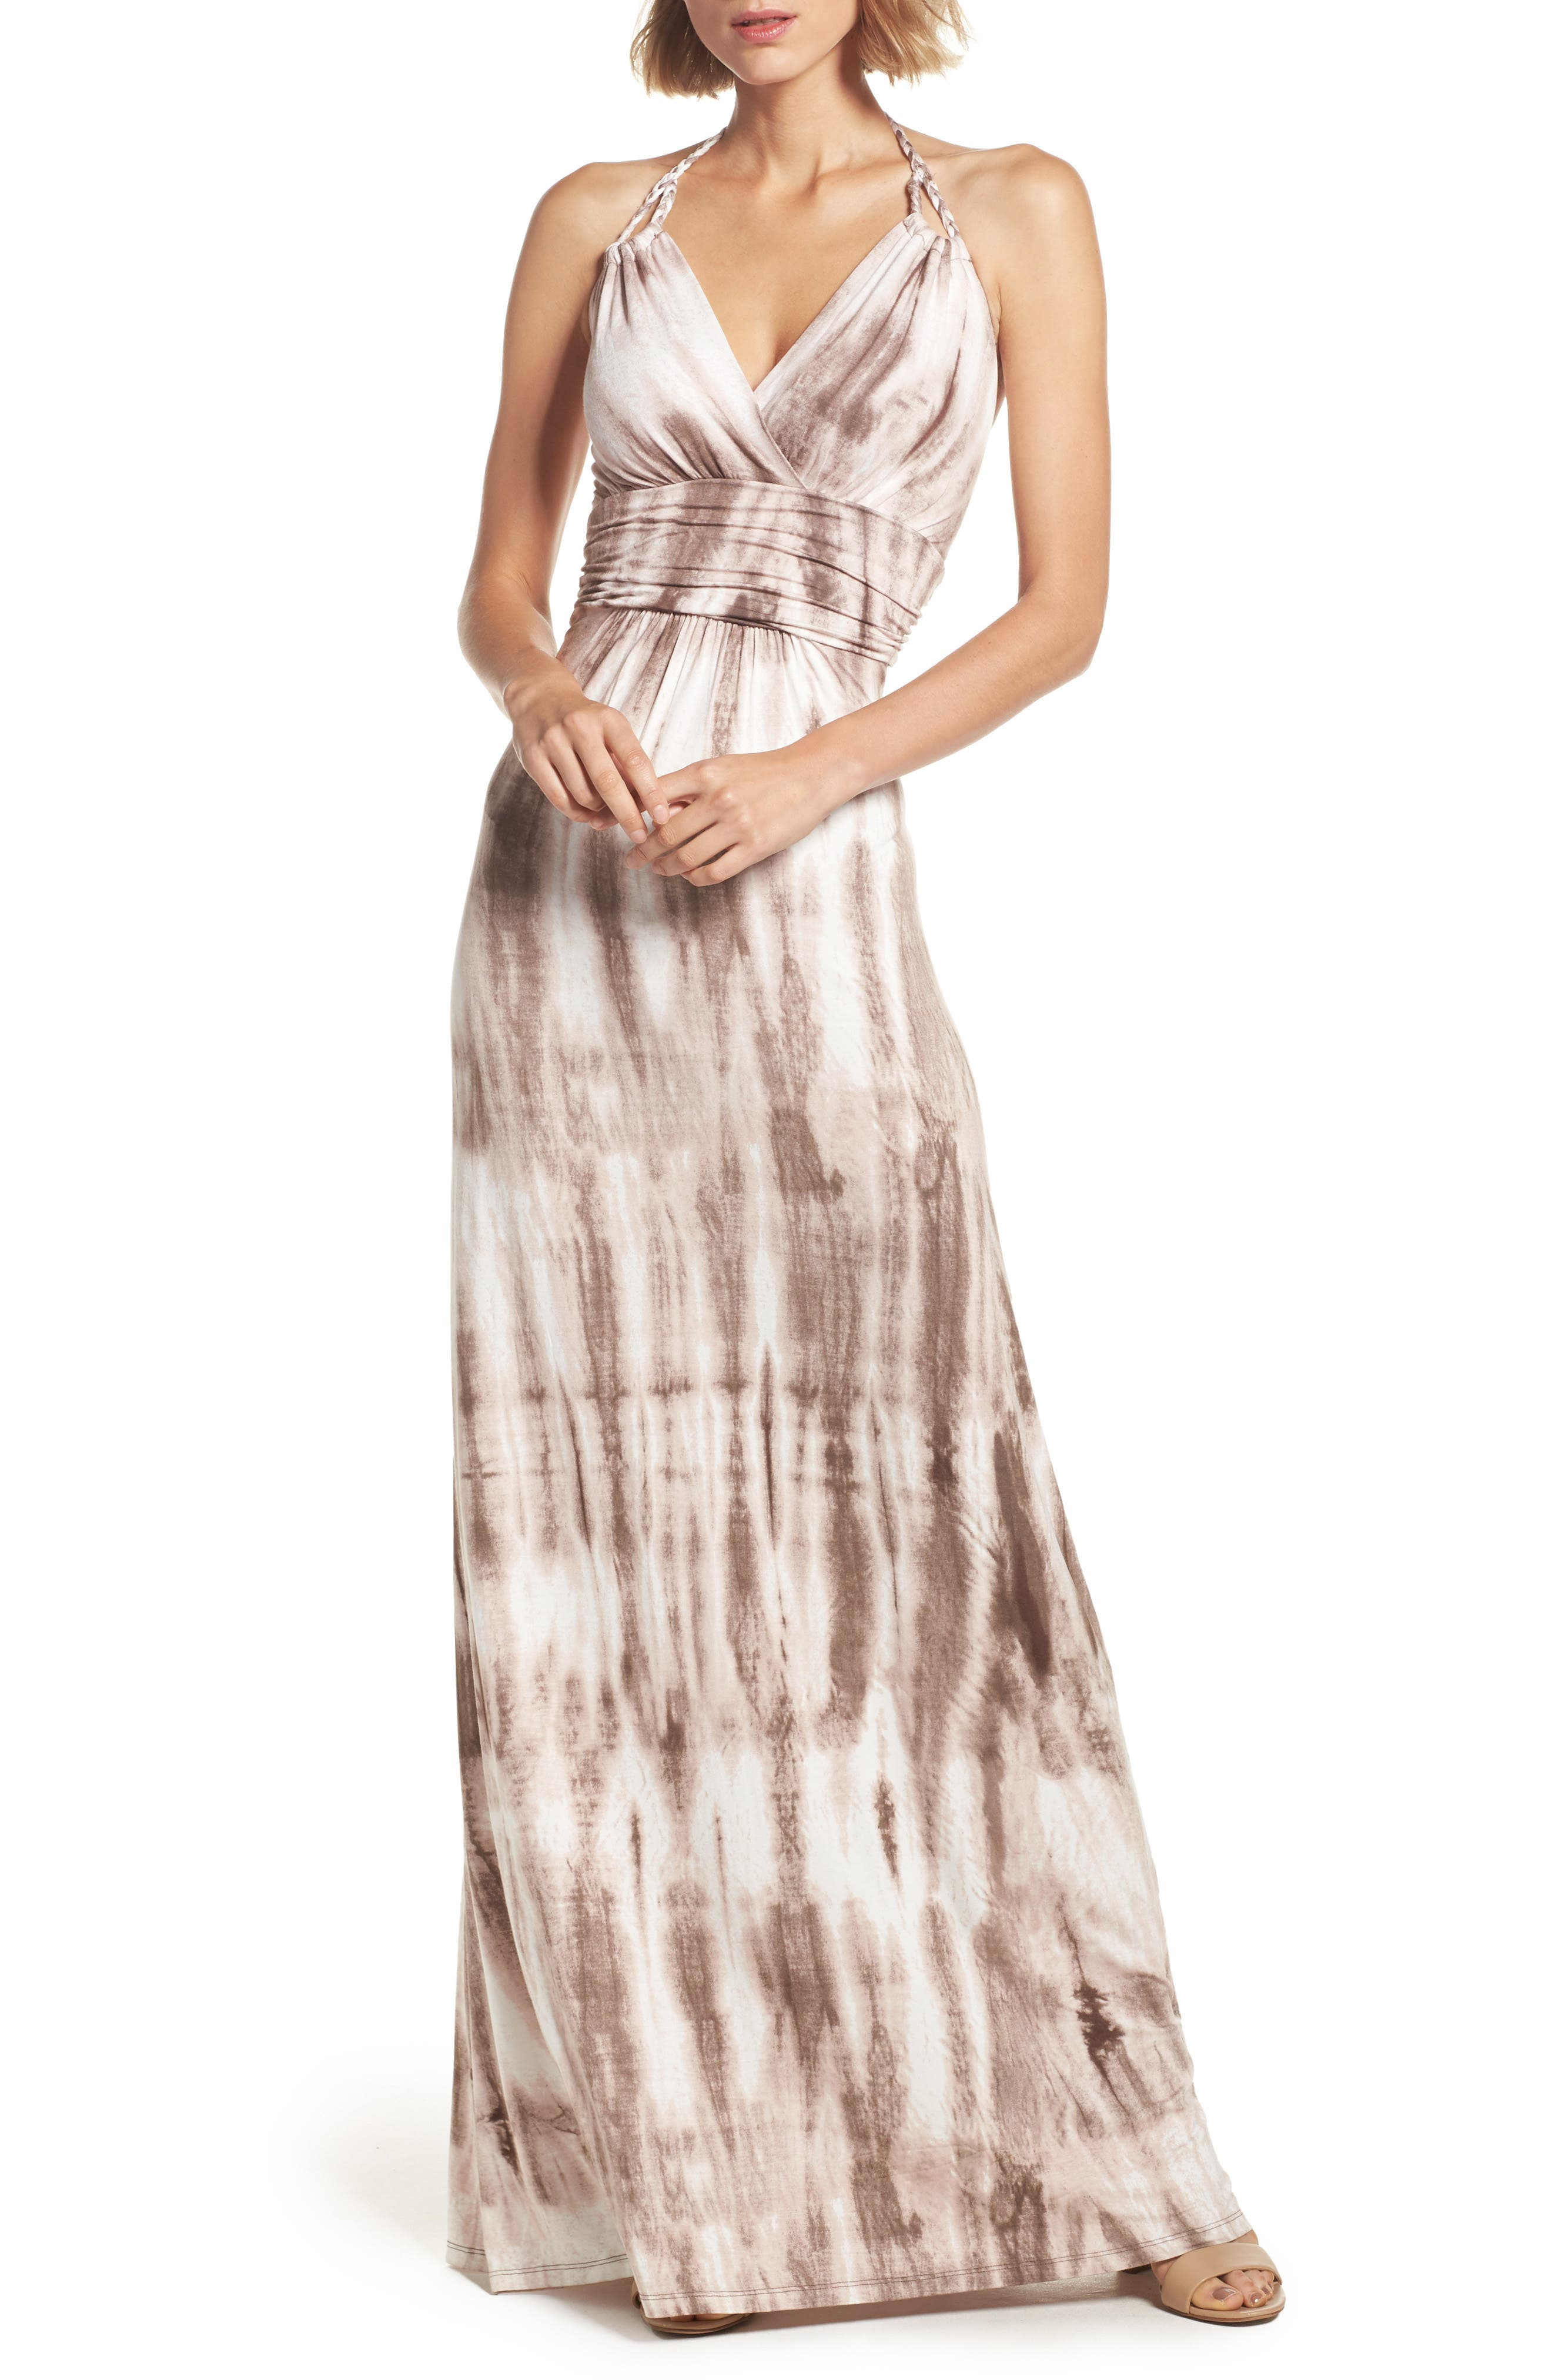 Felicity & Coco Shafter Tie Dye Jersey Halter Maxi Dress (Nordstrom Exclusive)